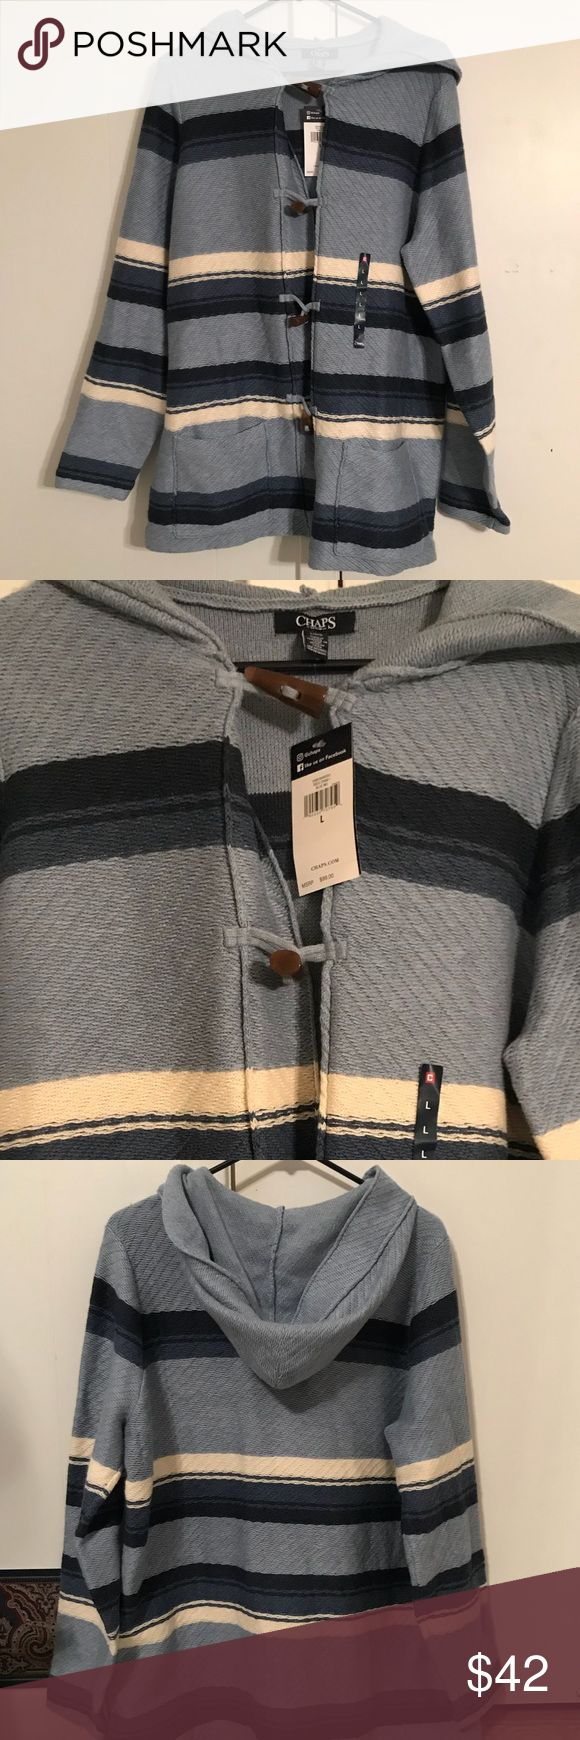 Women's large sweater / hoodie Women's large striped multi colored sweater/hoodie. It's mainly a light blue but has horizontal stripes which are navy blue and white. It's really soft and has a hood It has these really cool buttons down the front. It was a gift, i really do love it, but downsizing my life at this time unfortunately. Chaps Sweaters Cardigans